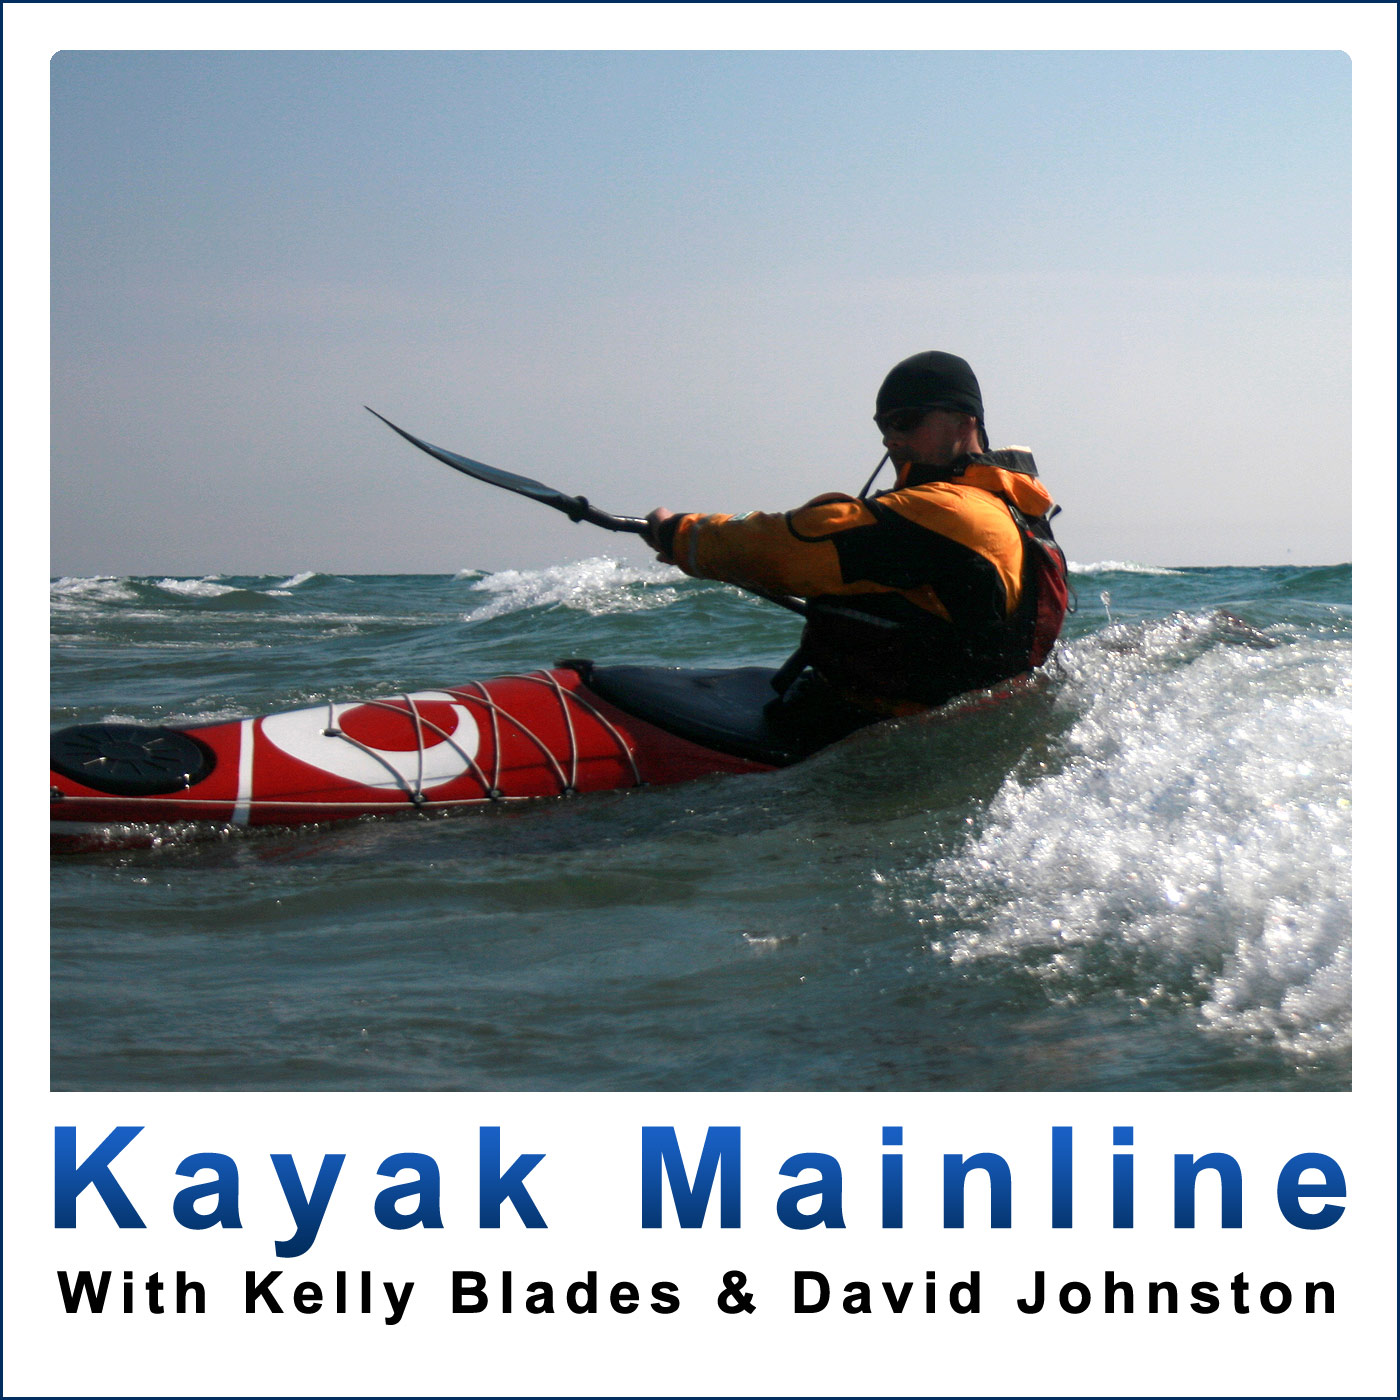 Kayak Mainline